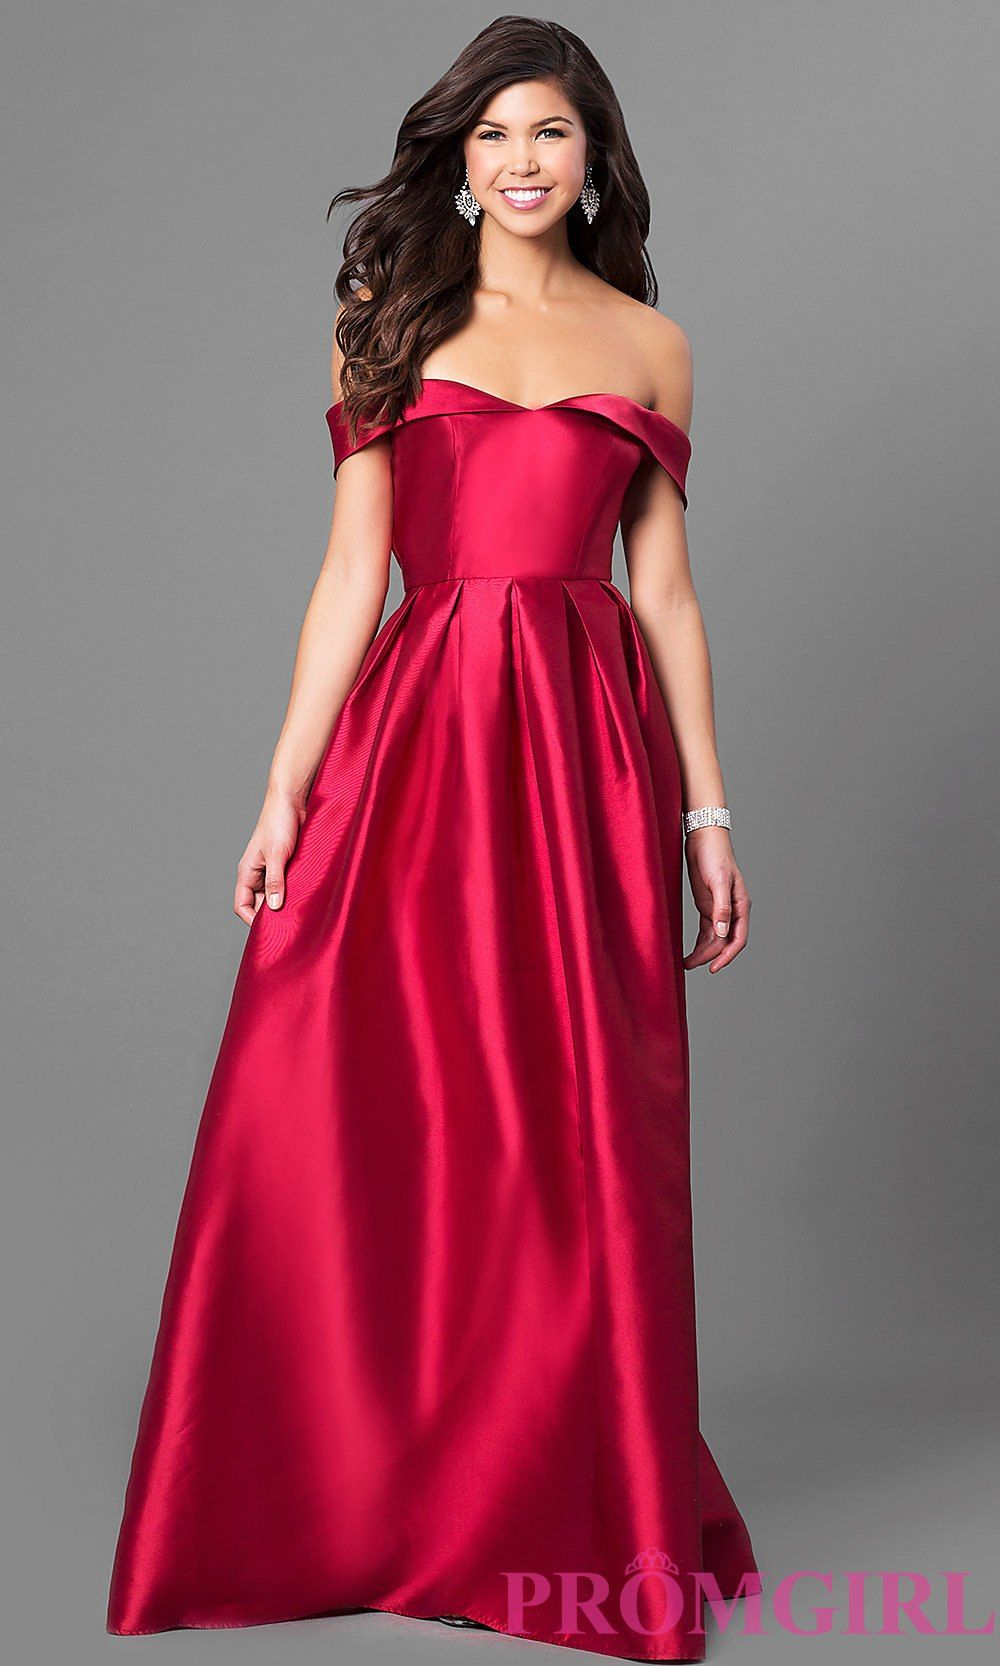 I like style lp from promgirl do you like prom